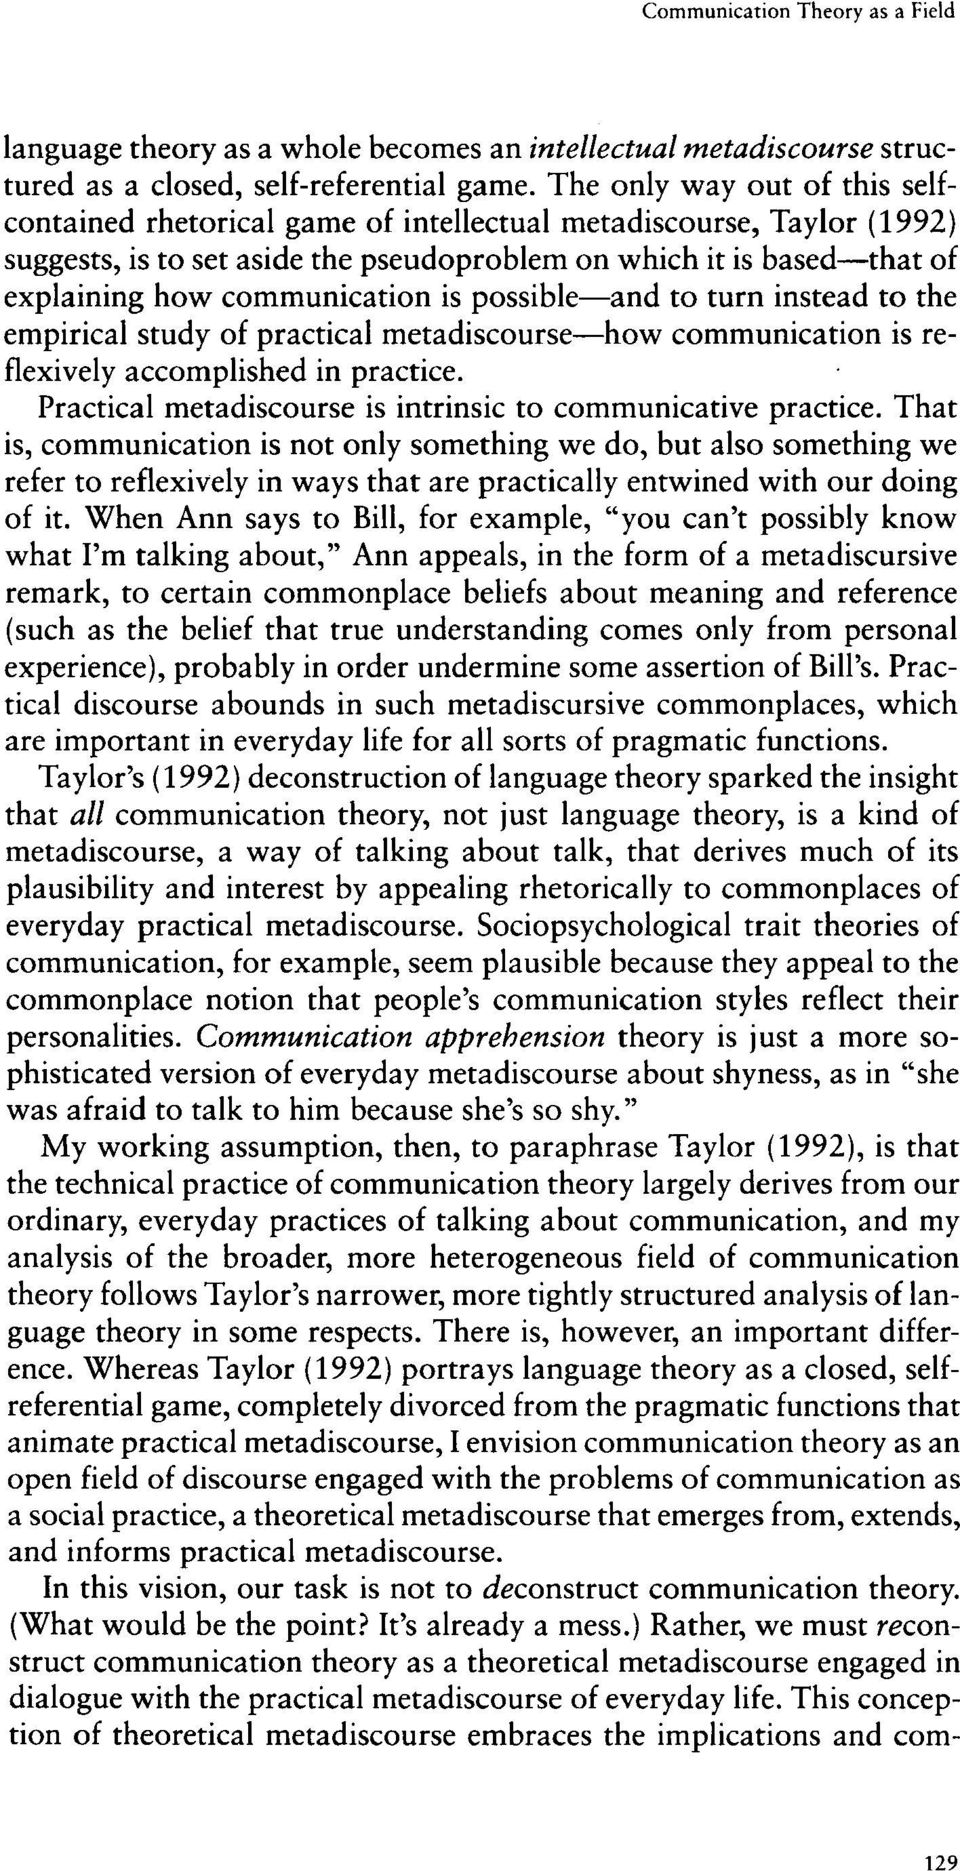 communication is possible-and to turn instead to the empirical study of practical metadiscourse-how communication is reflexively accomplished in practice.